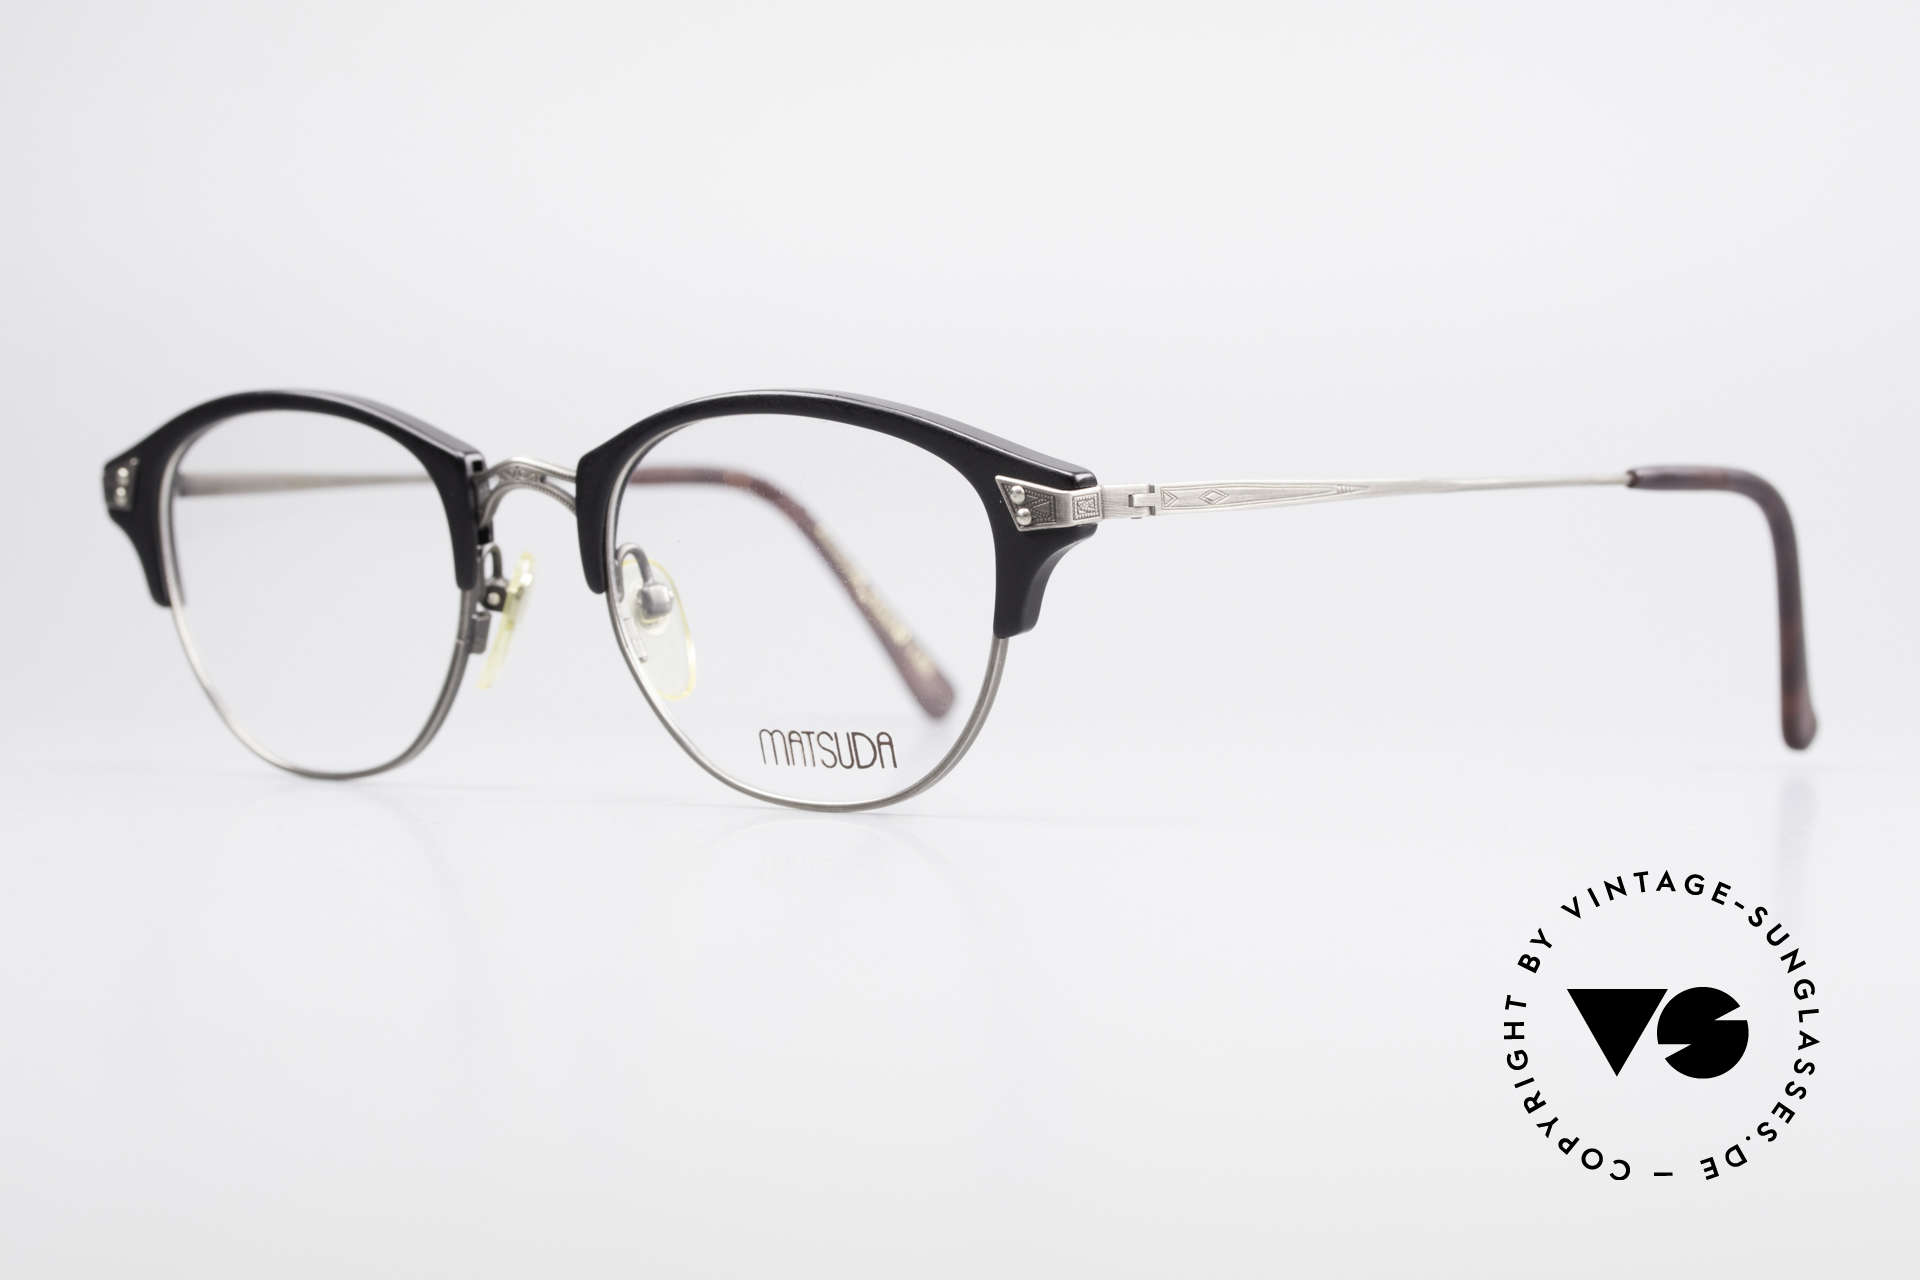 Matsuda 2840 Panto Luxury Eyeglass-Frame, full frame with attention to details; simply perfect, Made for Men and Women